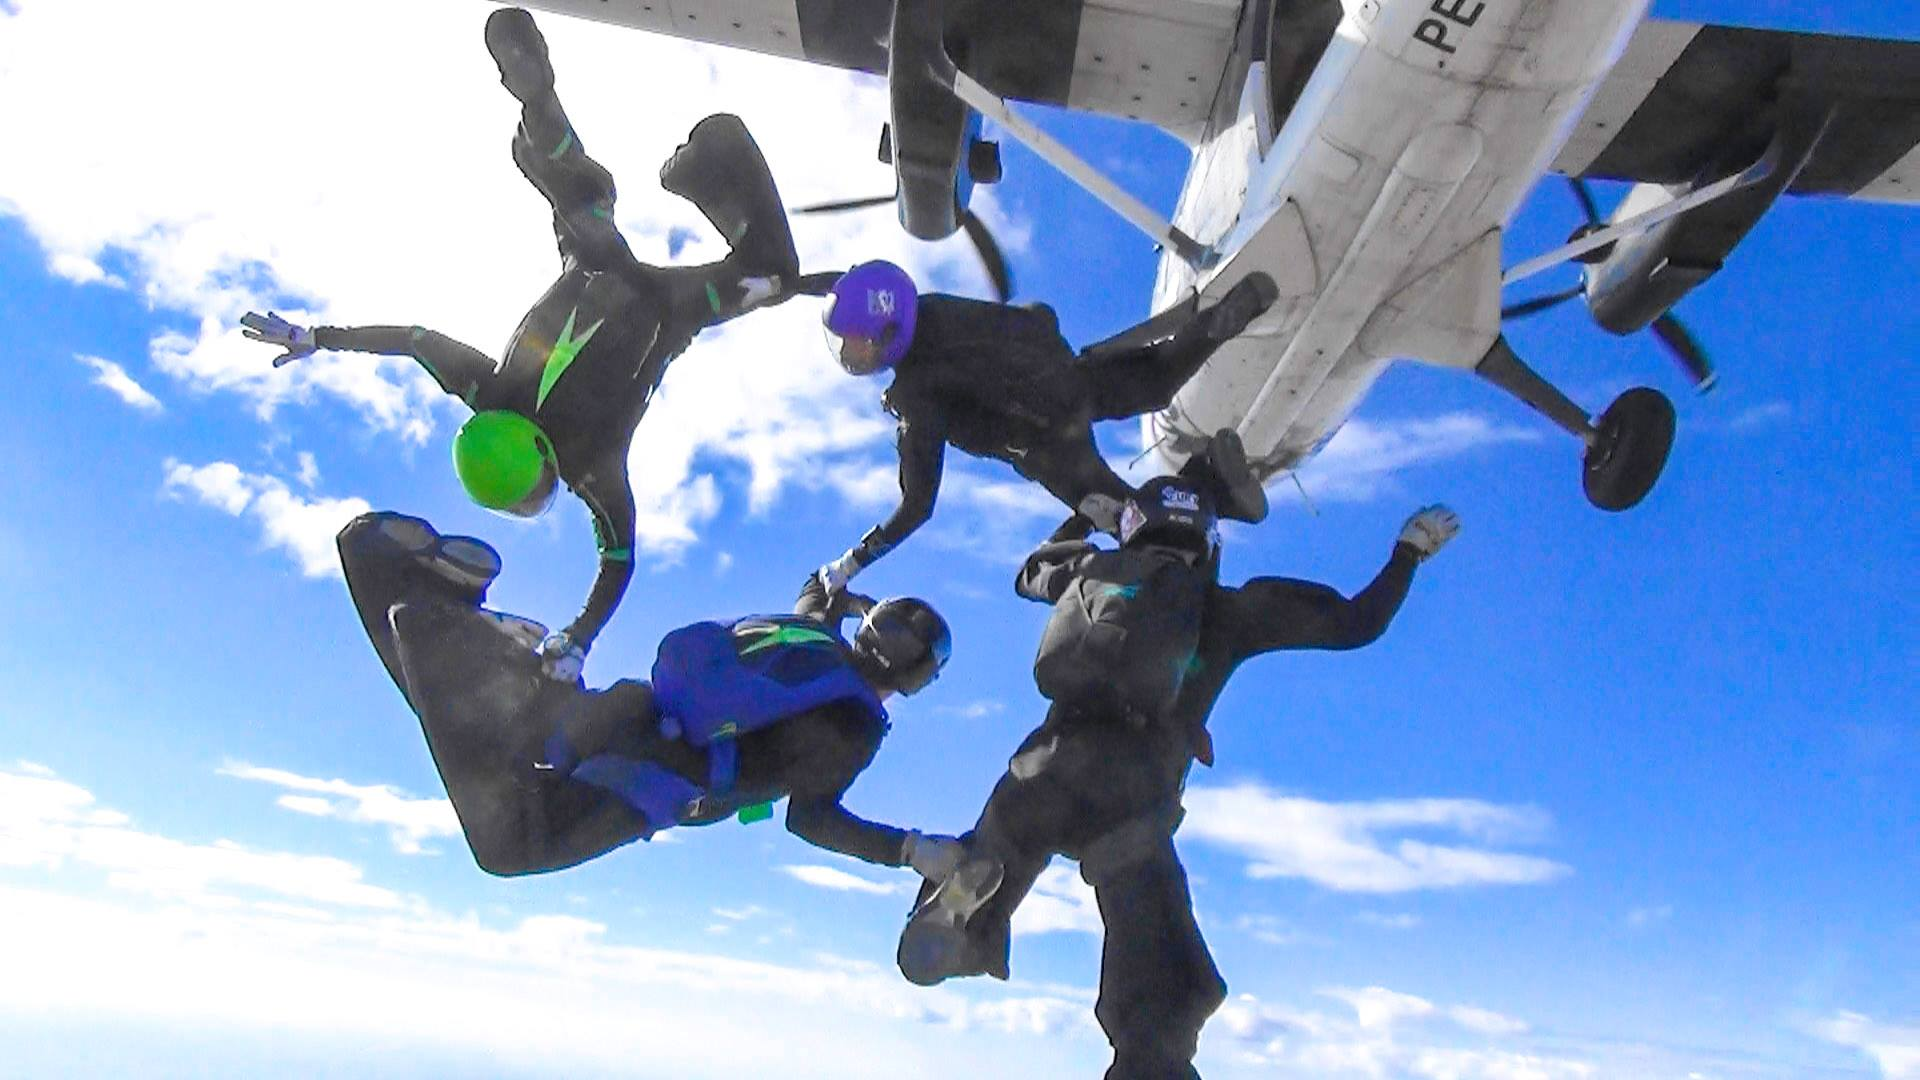 AT SKYDIVE PERRIS, OUR MFS TEAM WEARS A SIZE 9. | Skydive Perris